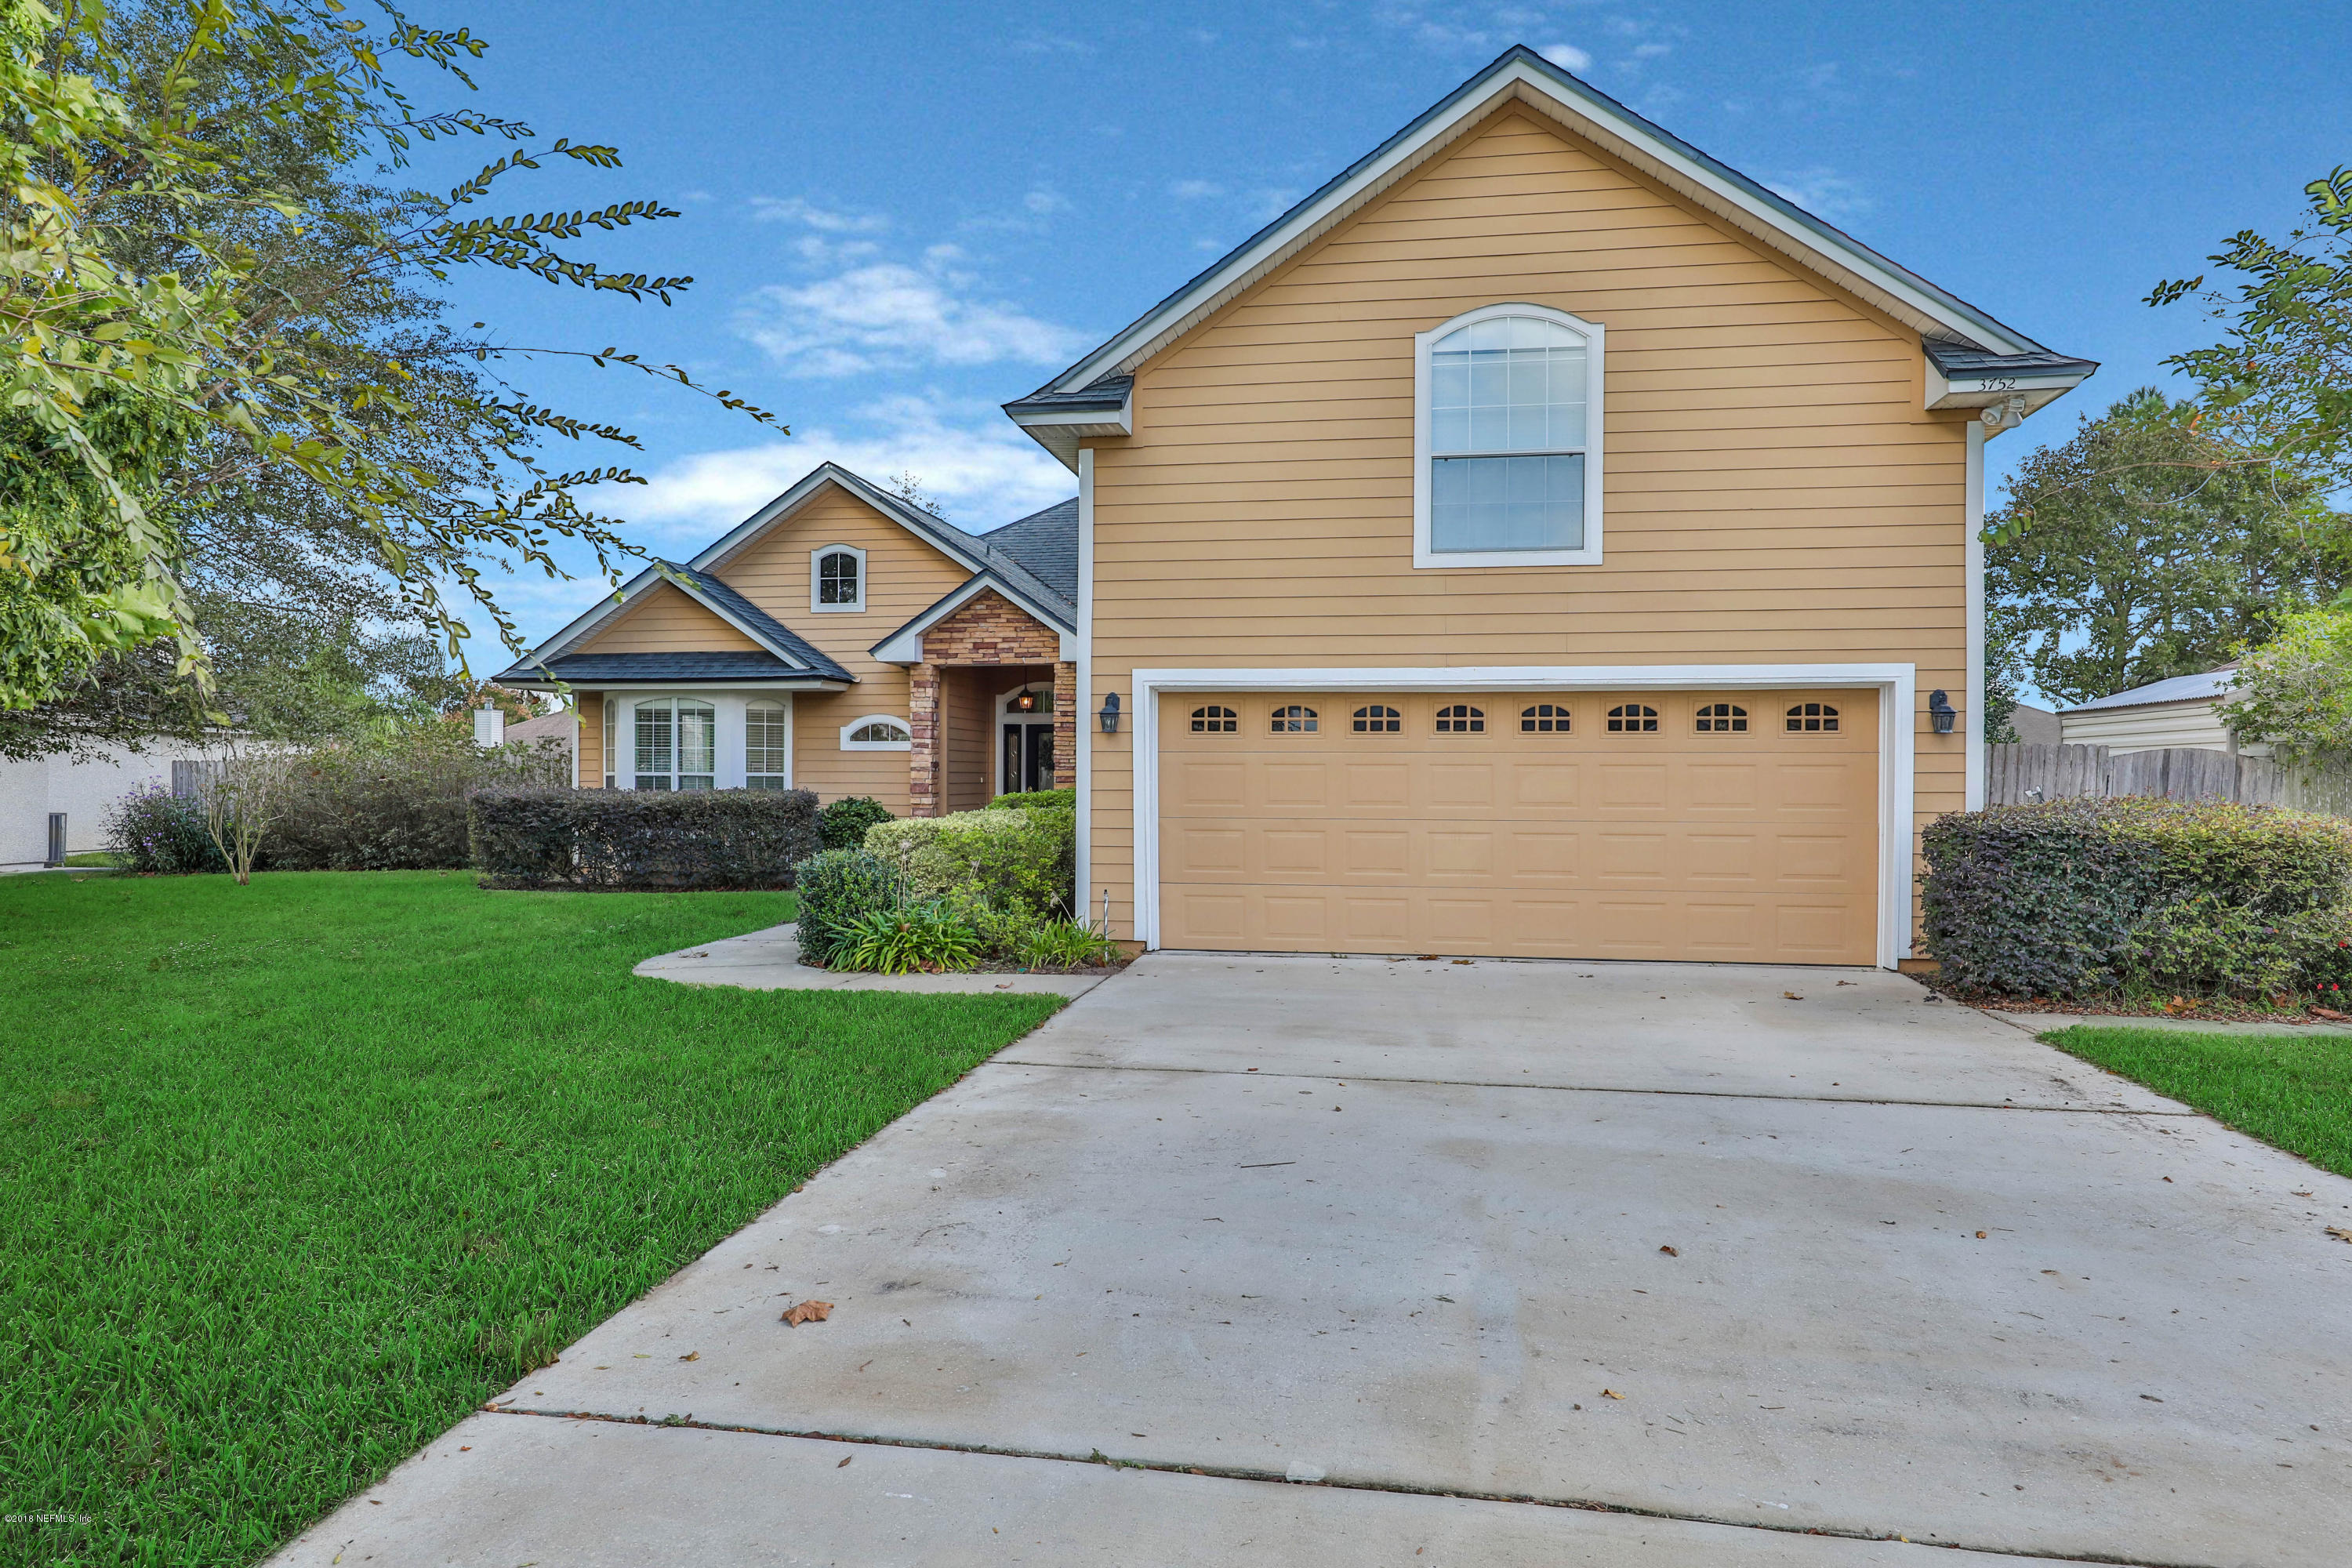 3752 SOUTHBANK, GREEN COVE SPRINGS, FLORIDA 32043, 4 Bedrooms Bedrooms, ,3 BathroomsBathrooms,Residential - single family,For sale,SOUTHBANK,967361